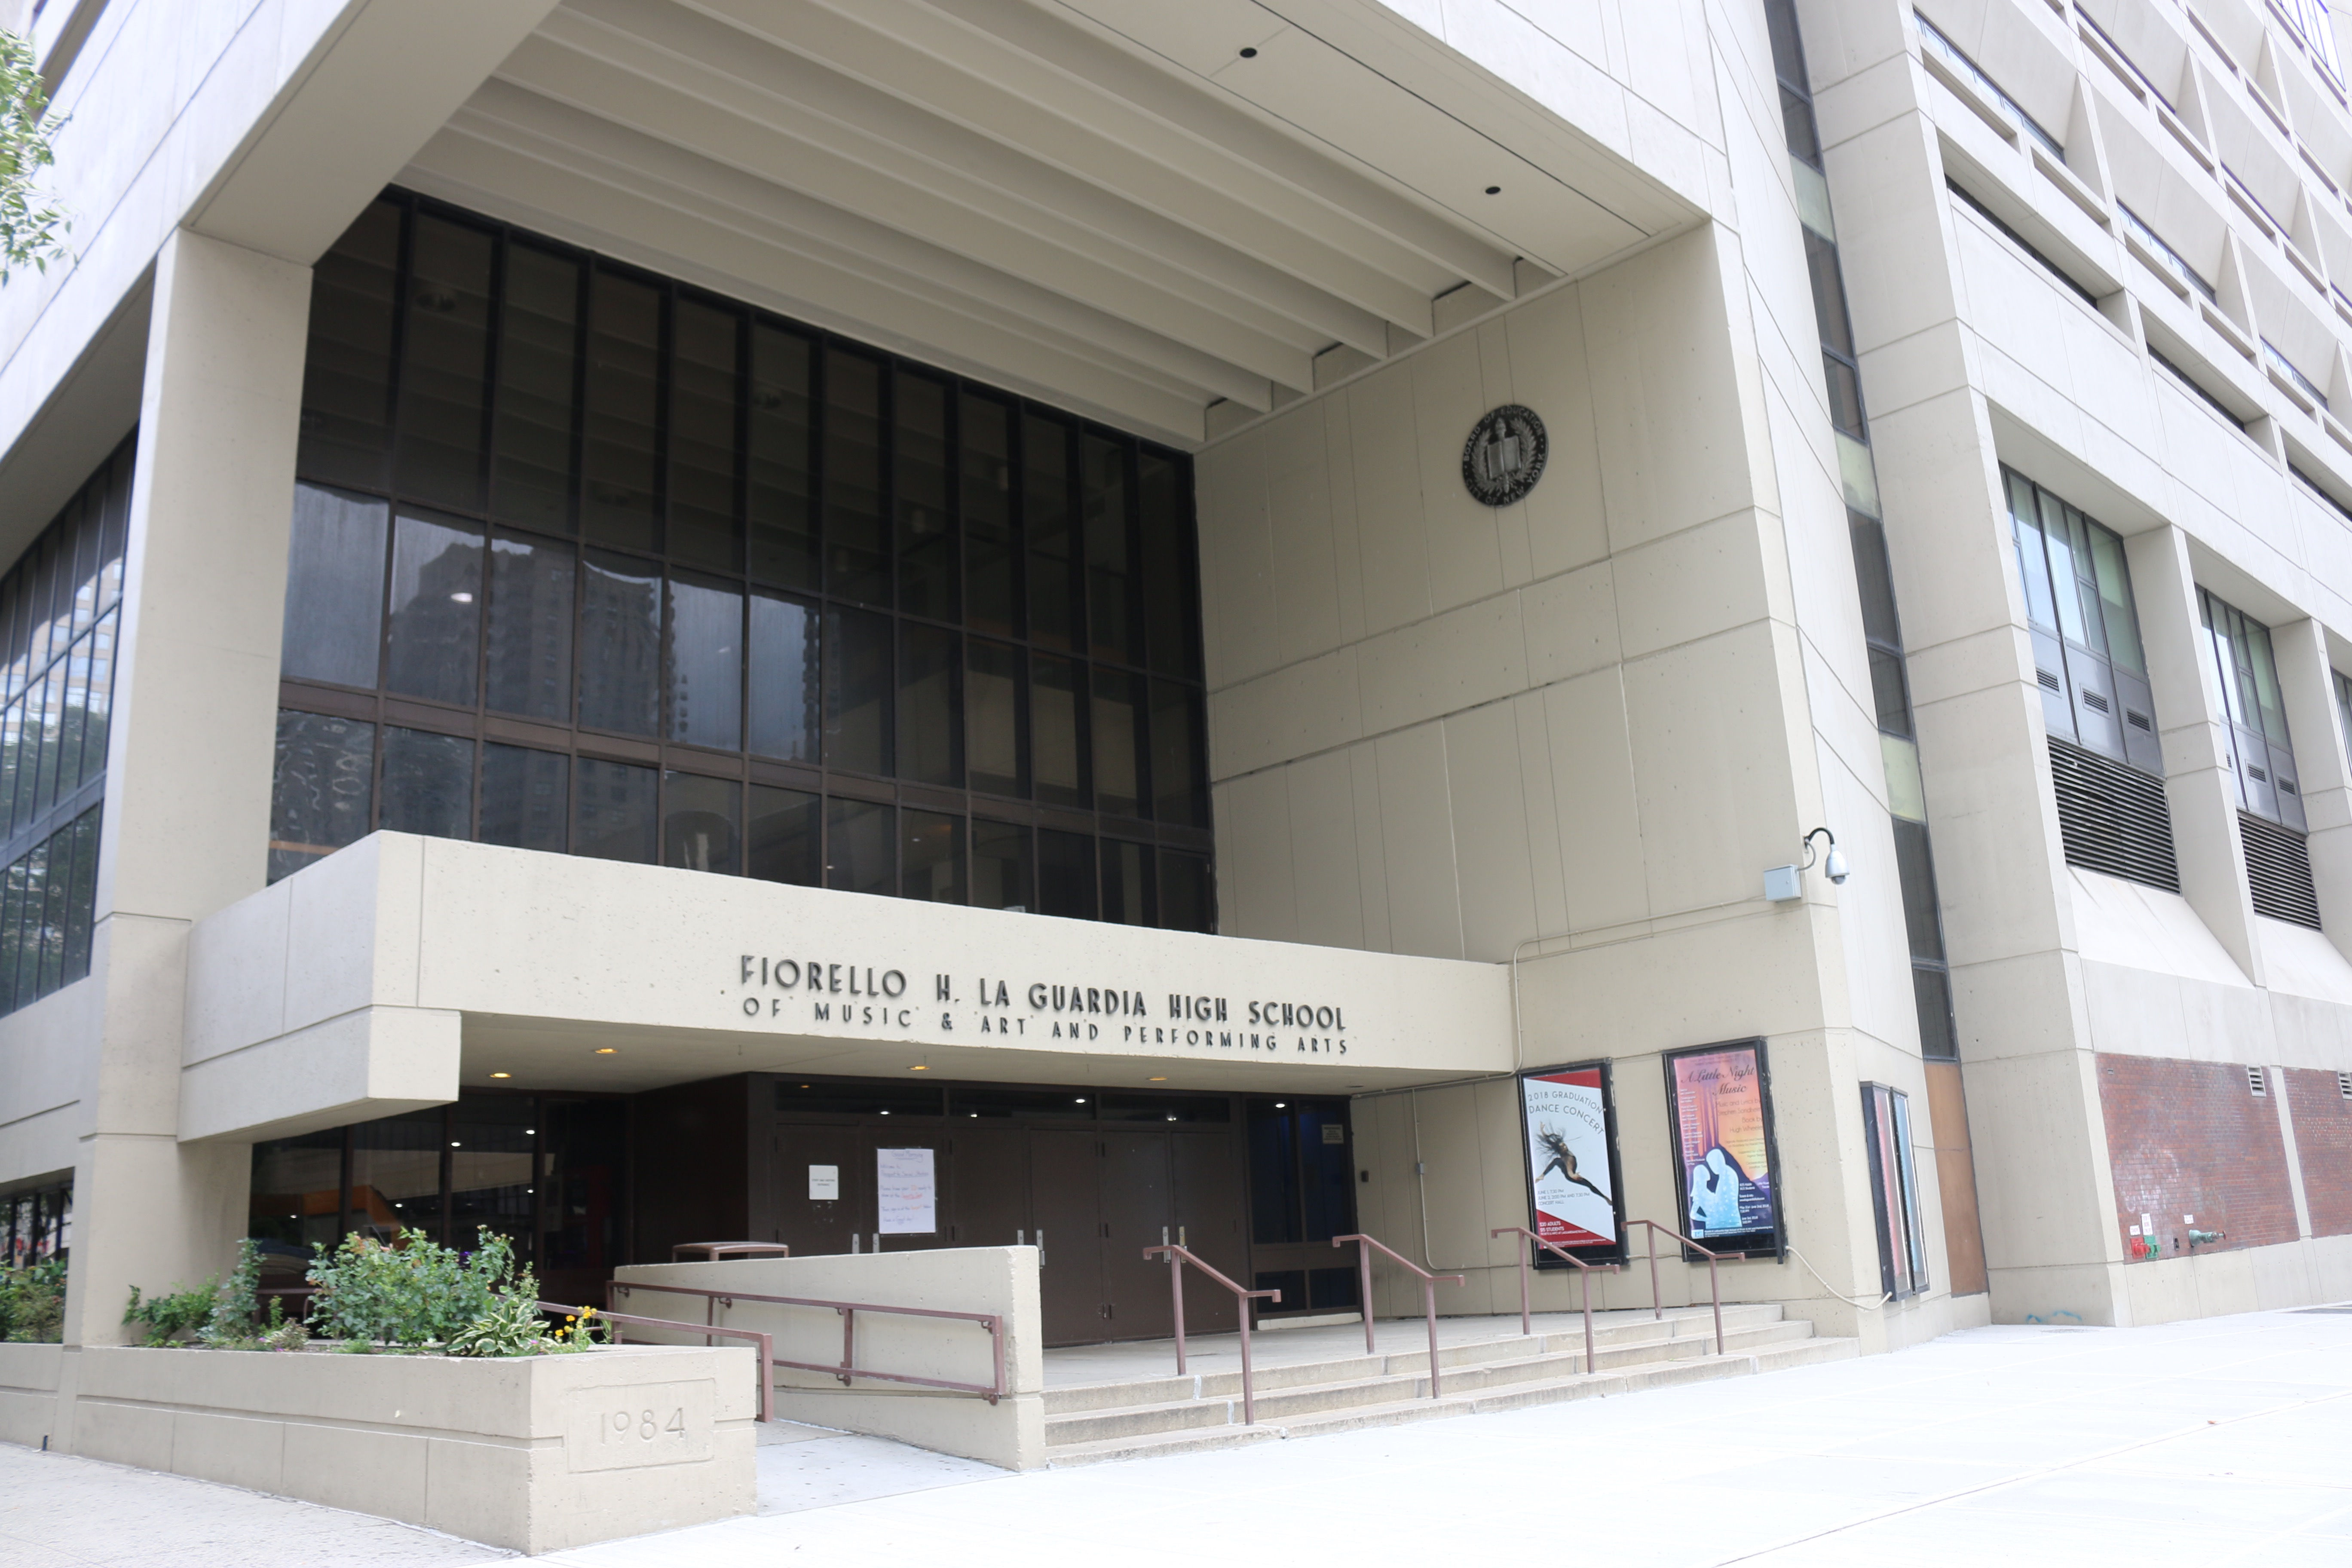 LaGuardia High School on the Upper West Side is one of the city's elite specialized high schools.